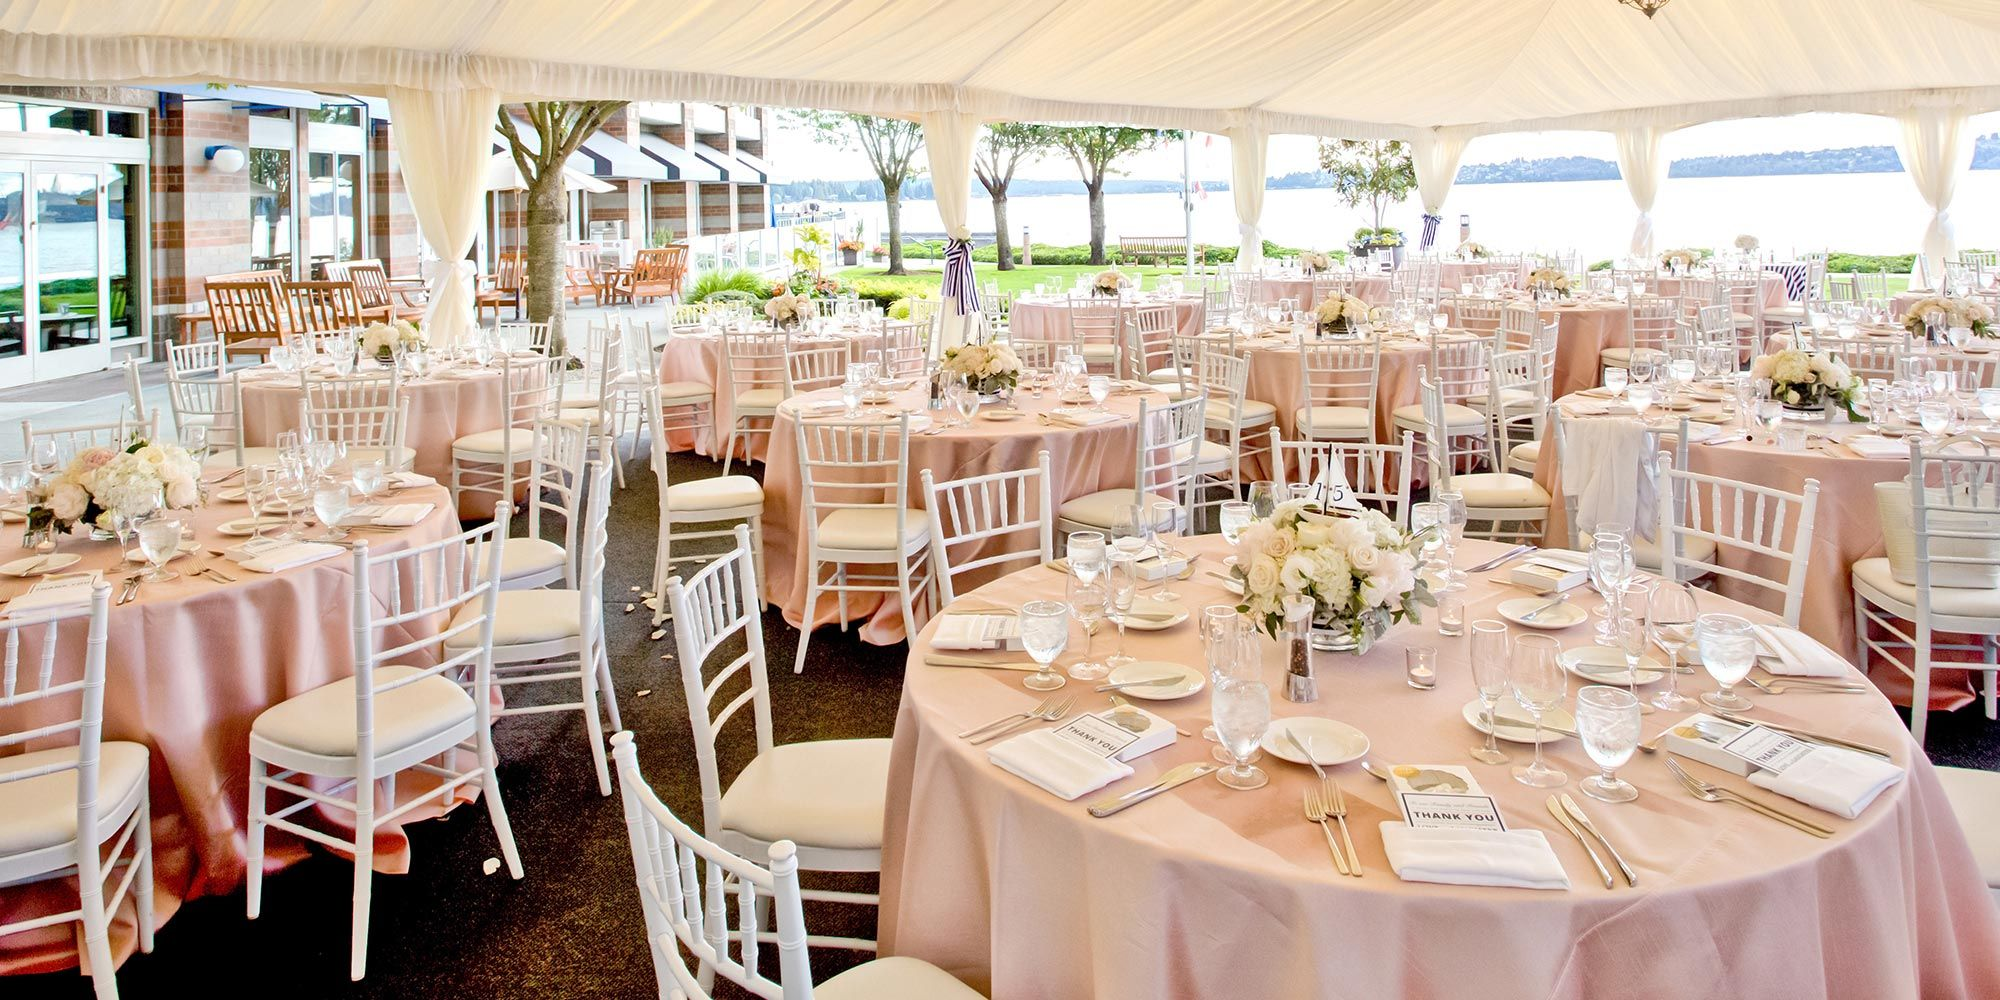 Woodmark Hotel Offers A Variety Of Wedding Venues And Reception Sites On The Shores Lake Washington